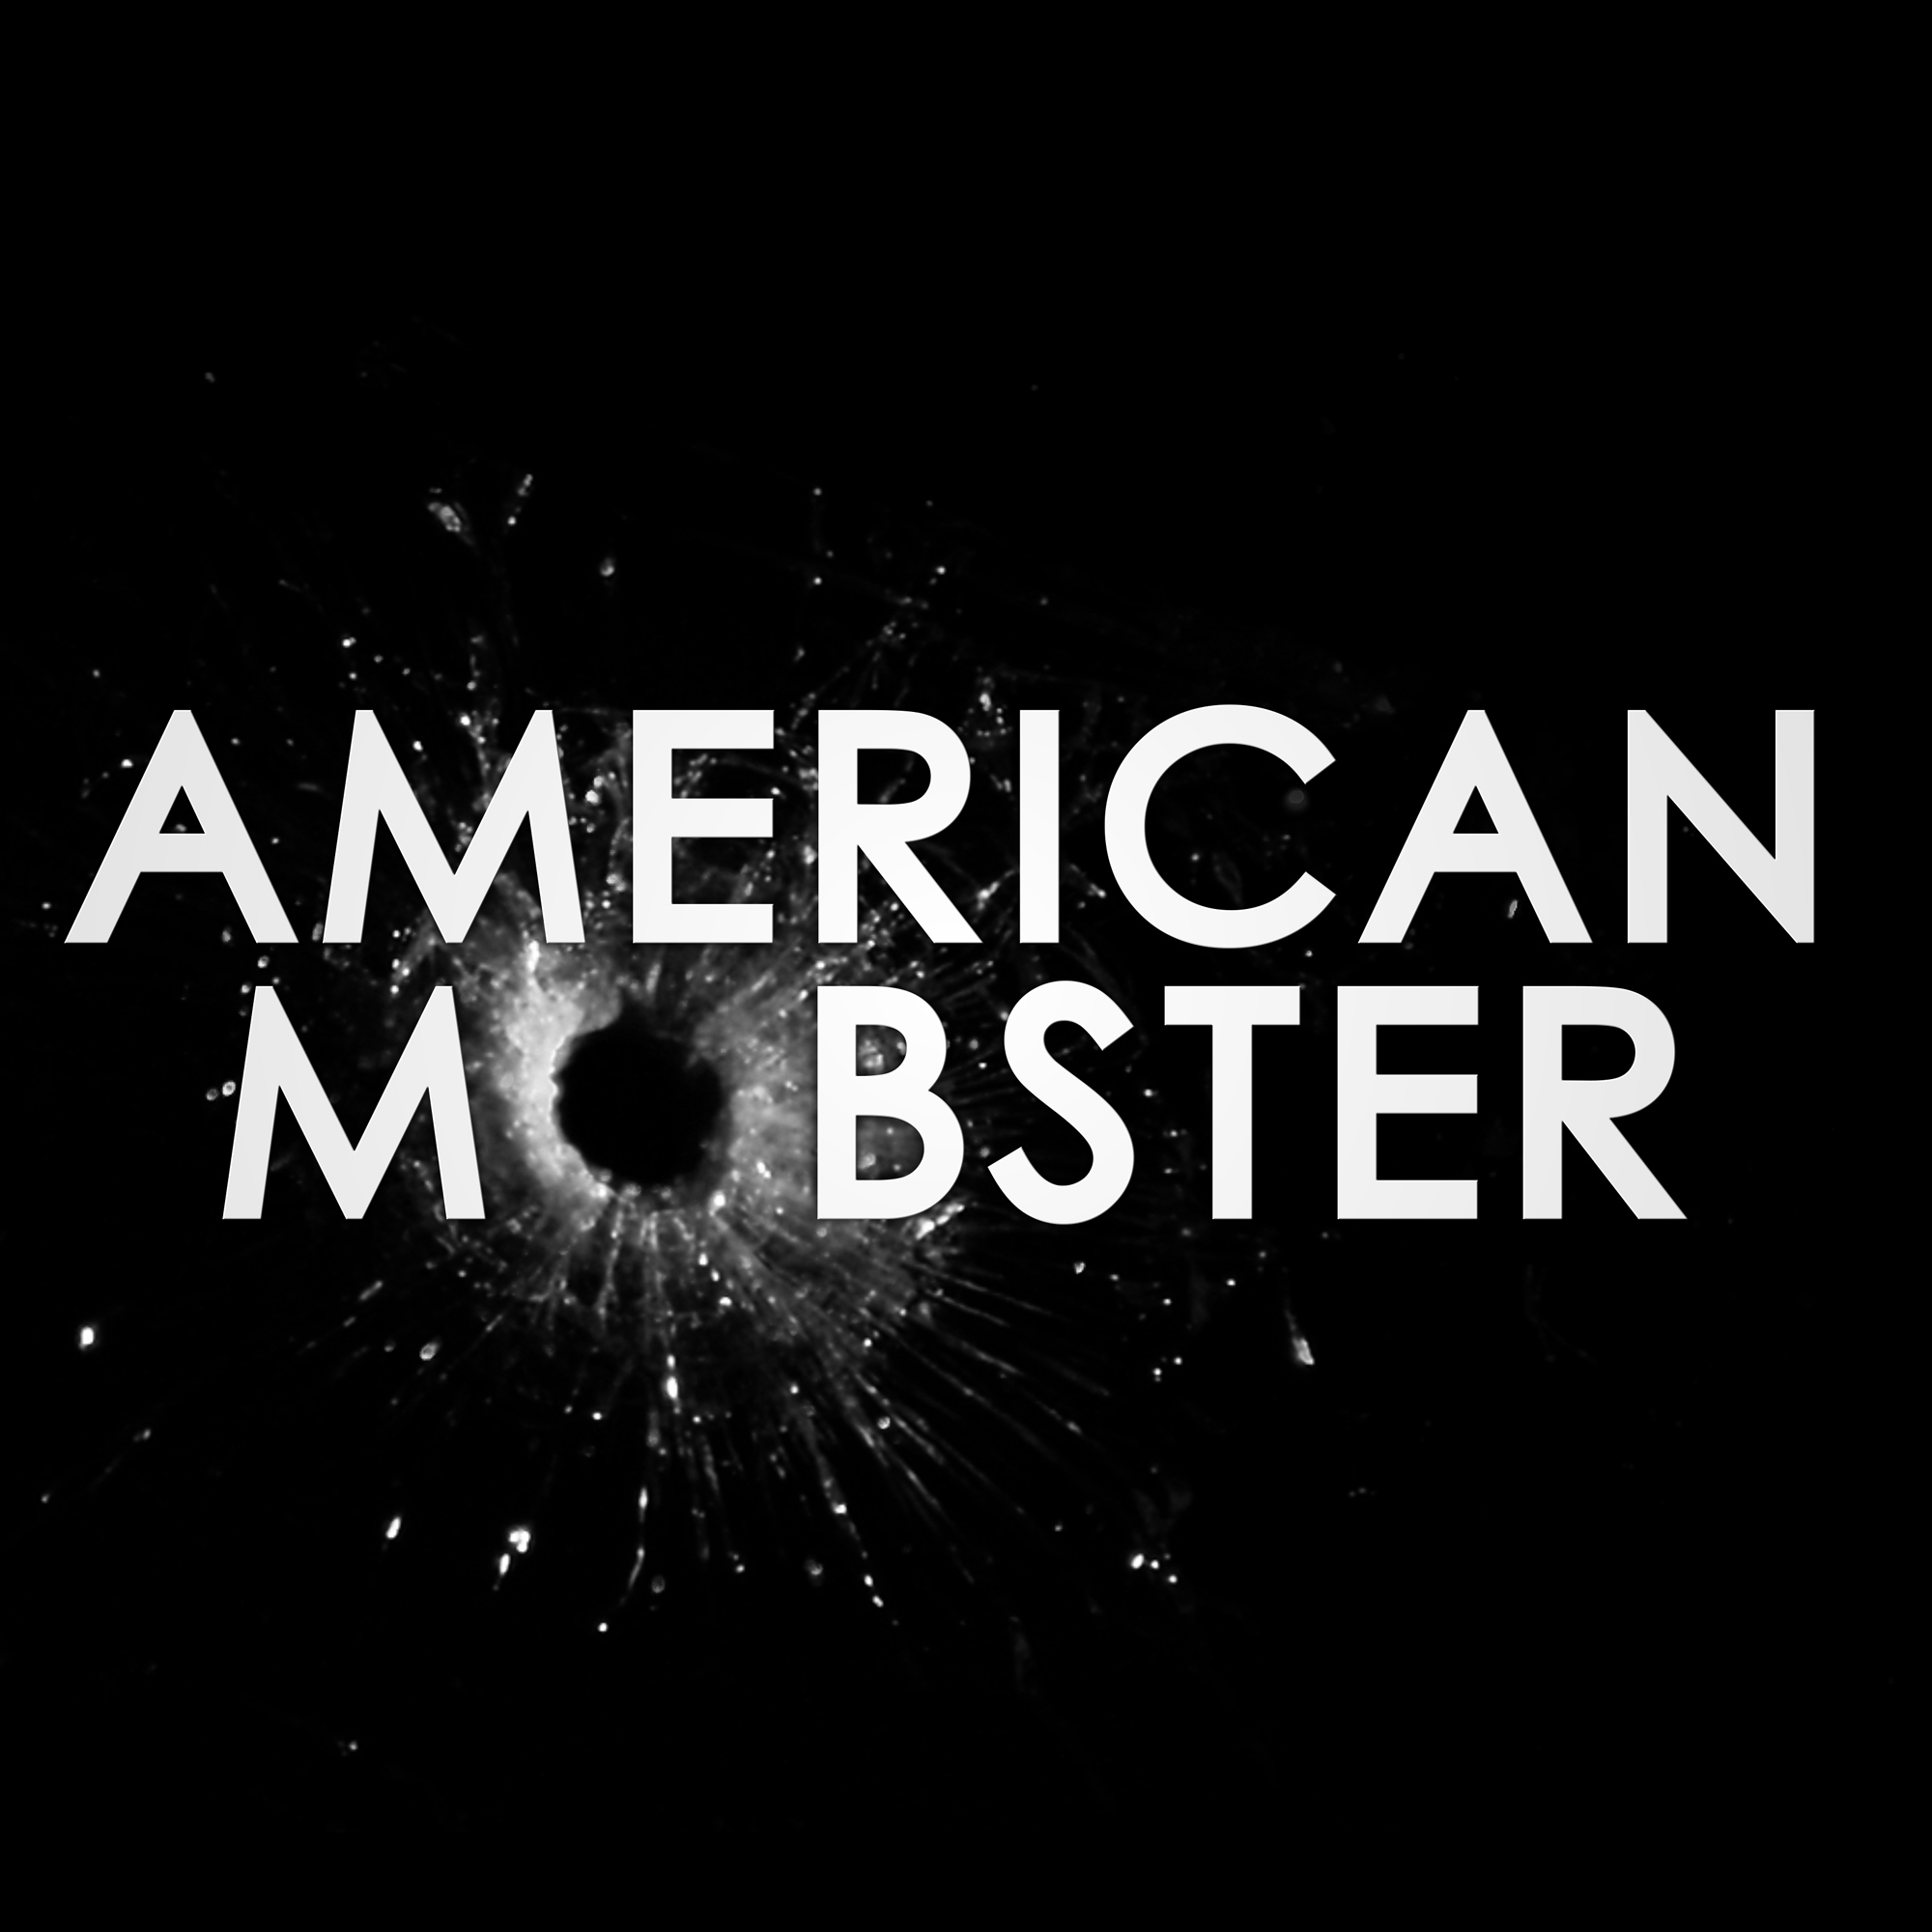 American Mobster (Original Motion Picture Soundtrack) - Songs written by Joe Petrucelli and Shane Adams (2016)Produced and Arranged by Shane Adams for Artist Accelerator